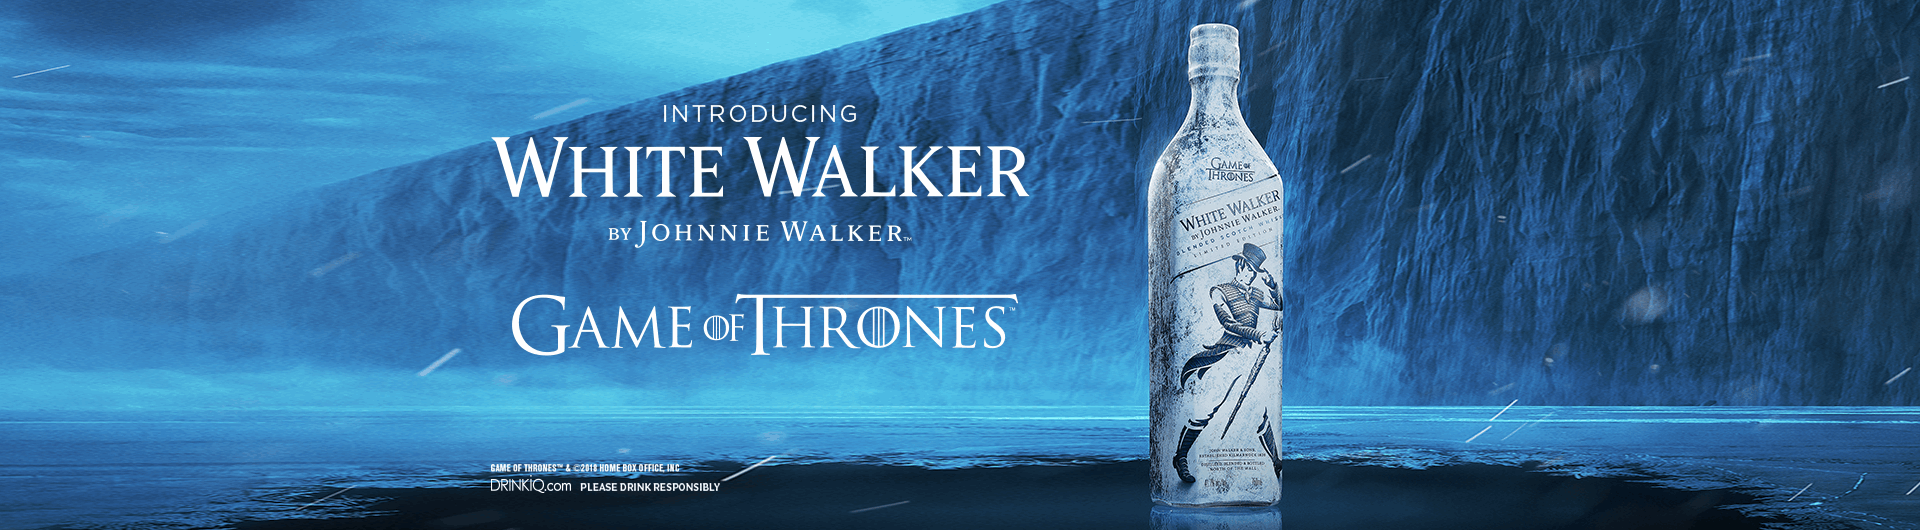 White Walker By Johnnie Walker Limited Edition Johnnie